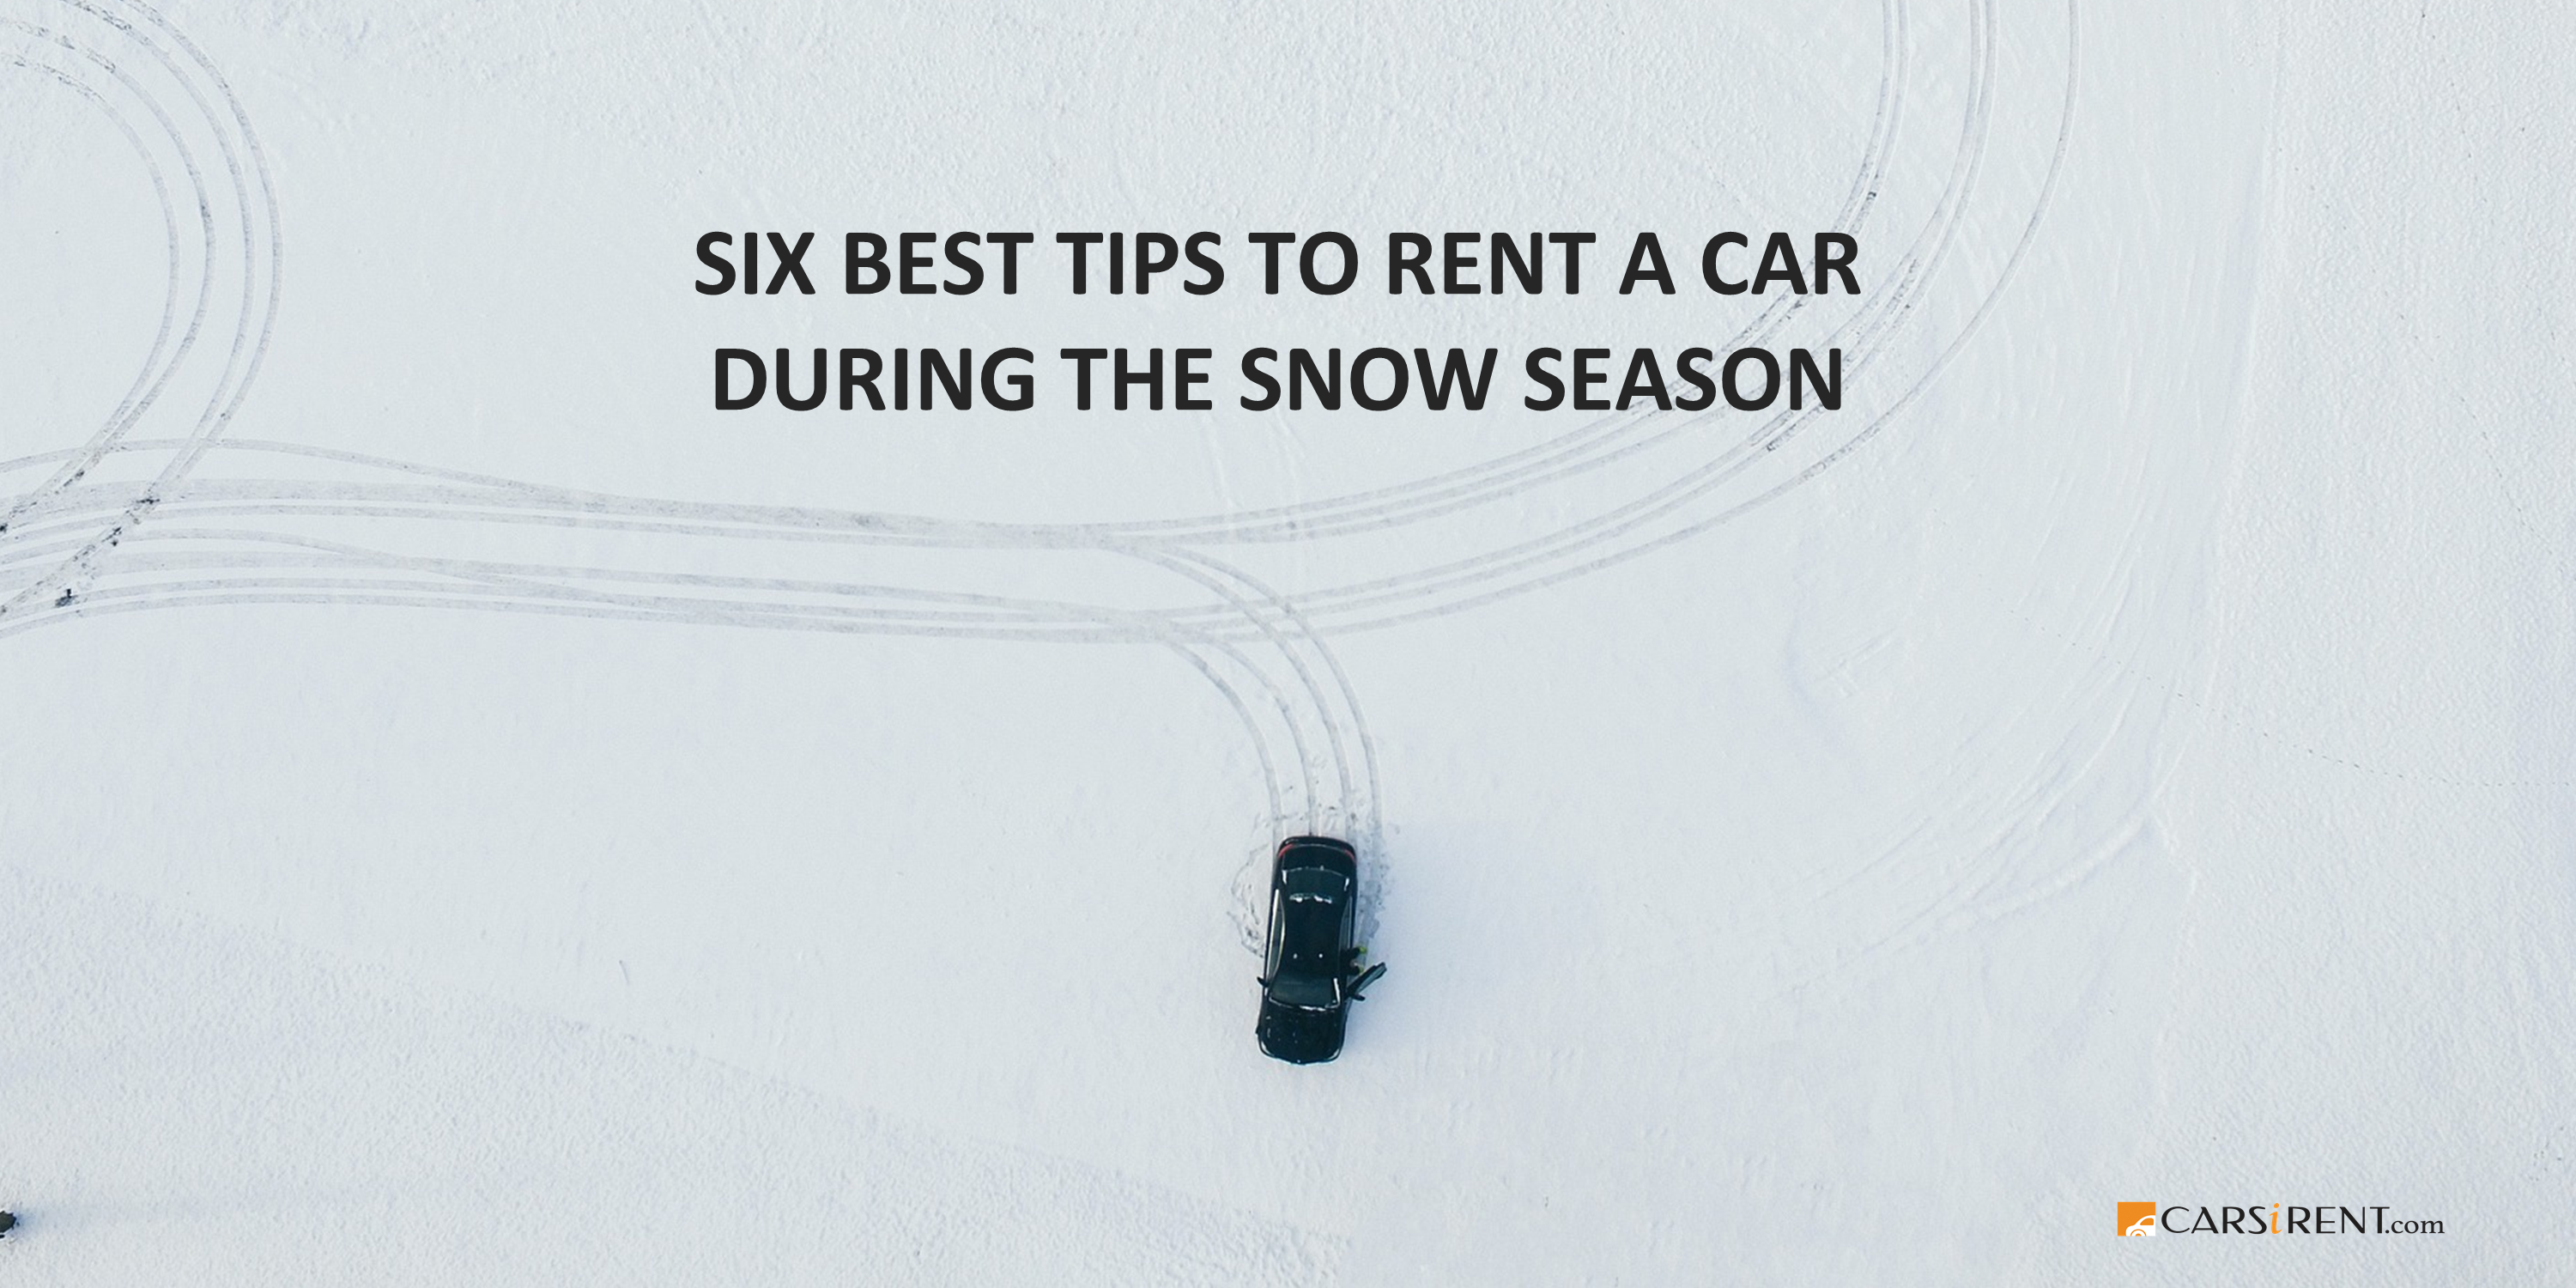 6 Best Tips to Rent a Car During the Snow Season